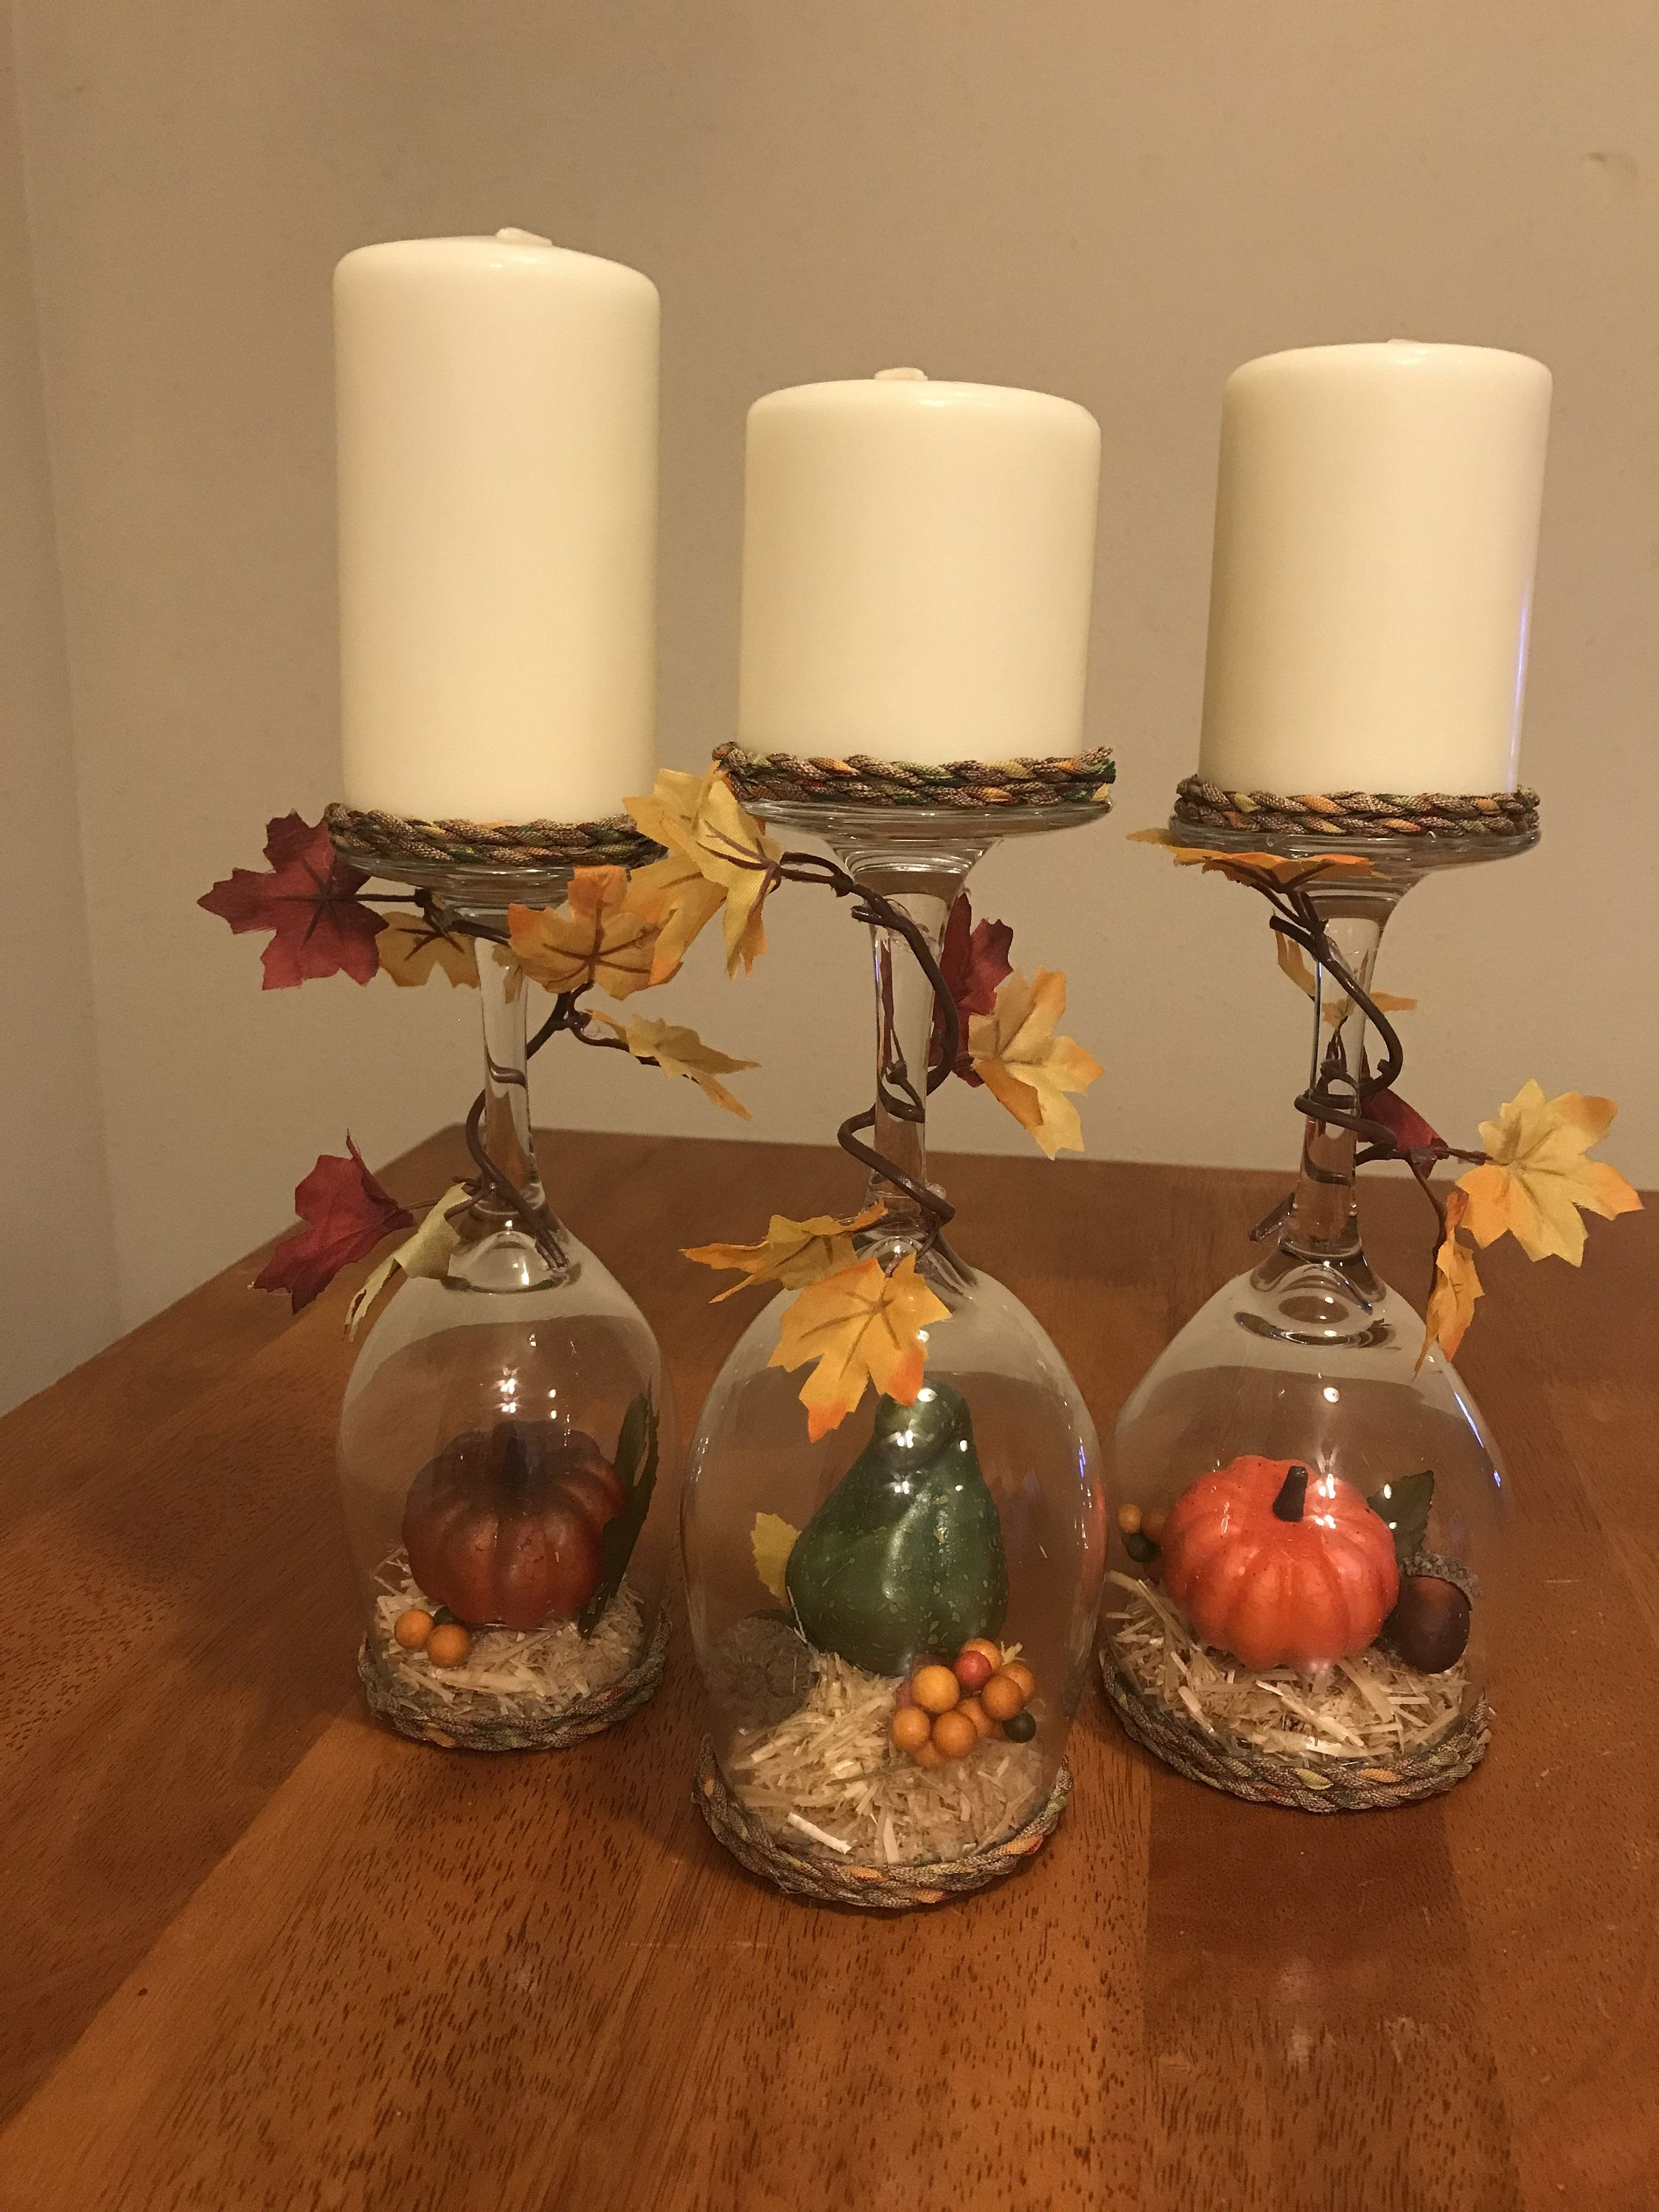 Harvest Wineglass Candleholders By Jenscreationsbyjen On Etsy Wine Glass Candle Holder Wine Glass Candle Wine Glass Crafts